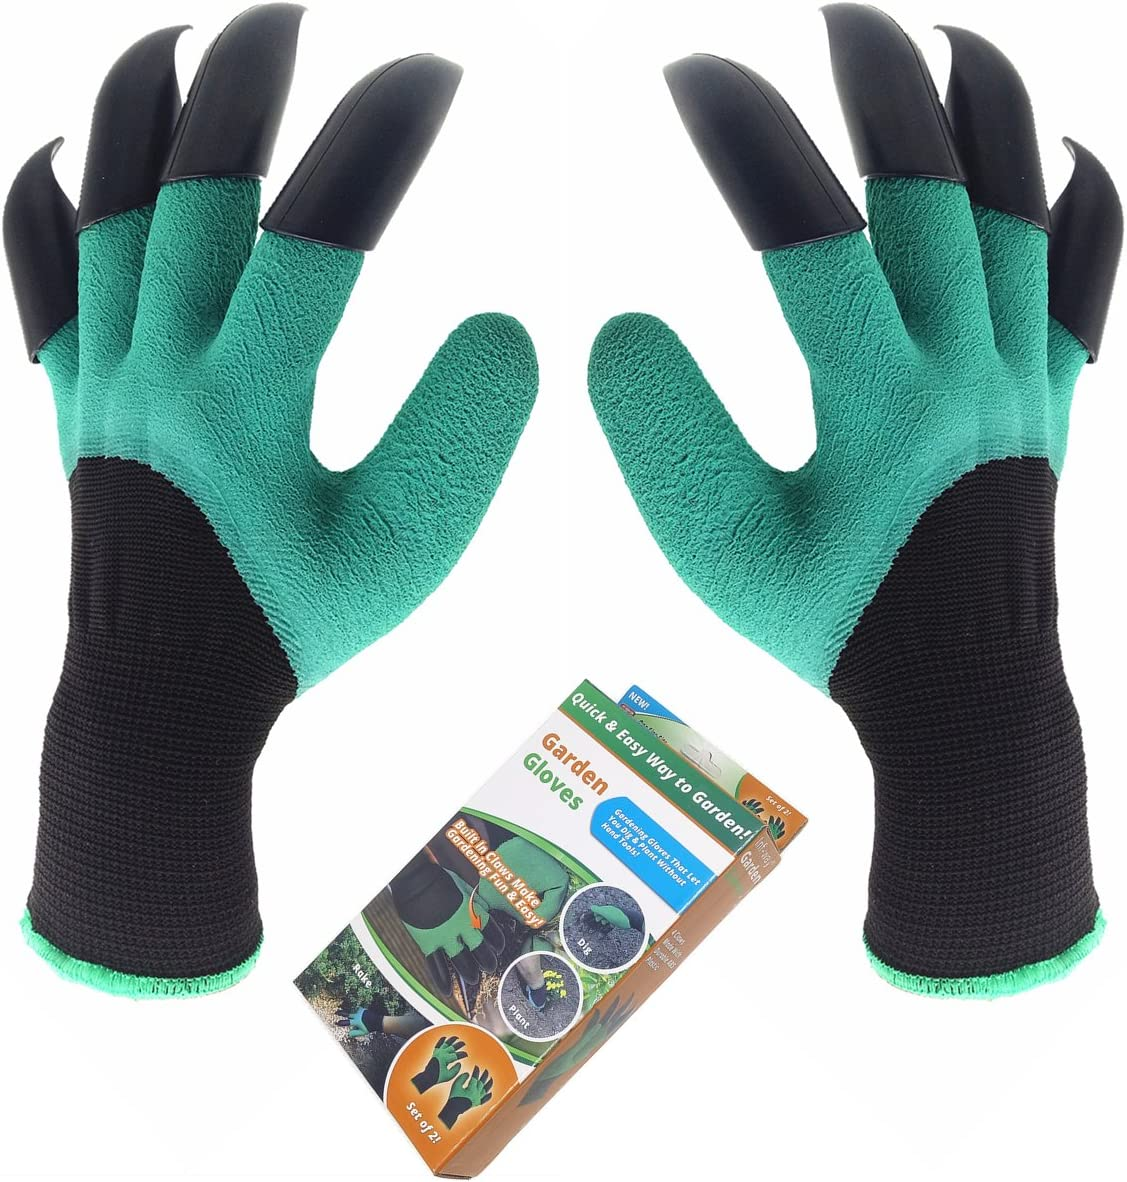 Green 1 Pairs Garden Genie Gloves with Fingertips Claw Gardening Gloves for Digging and Planting Great Gardening Gifts for Gardener